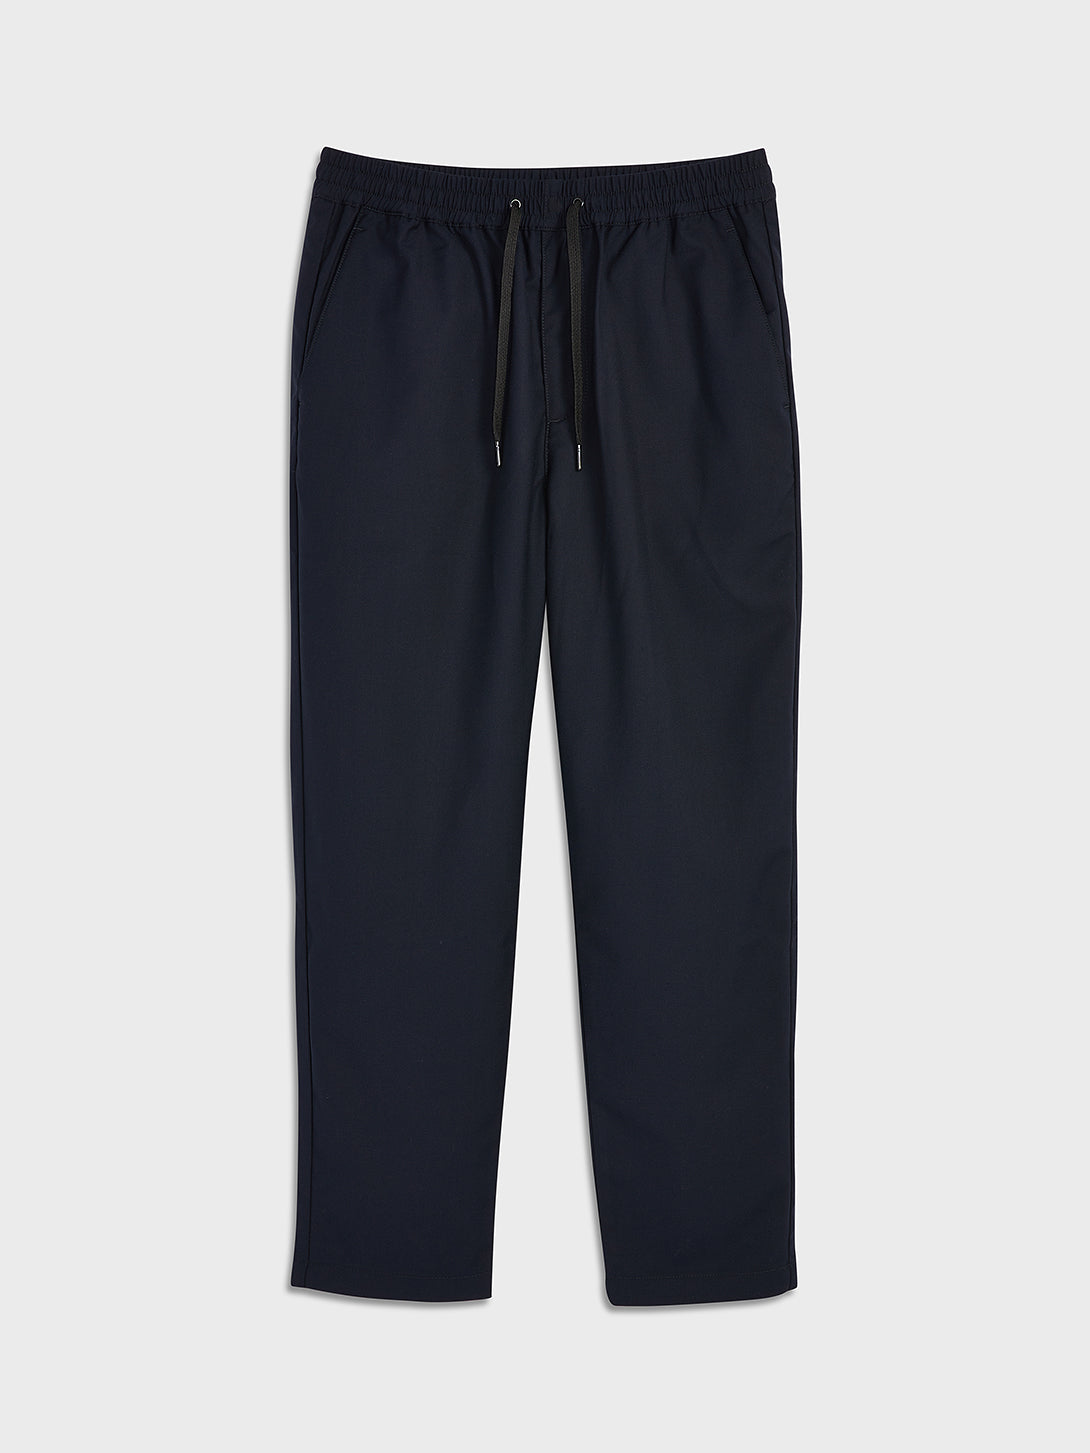 ONS Clothing Men's EMLYN CANVAS JOGGER in NAVY